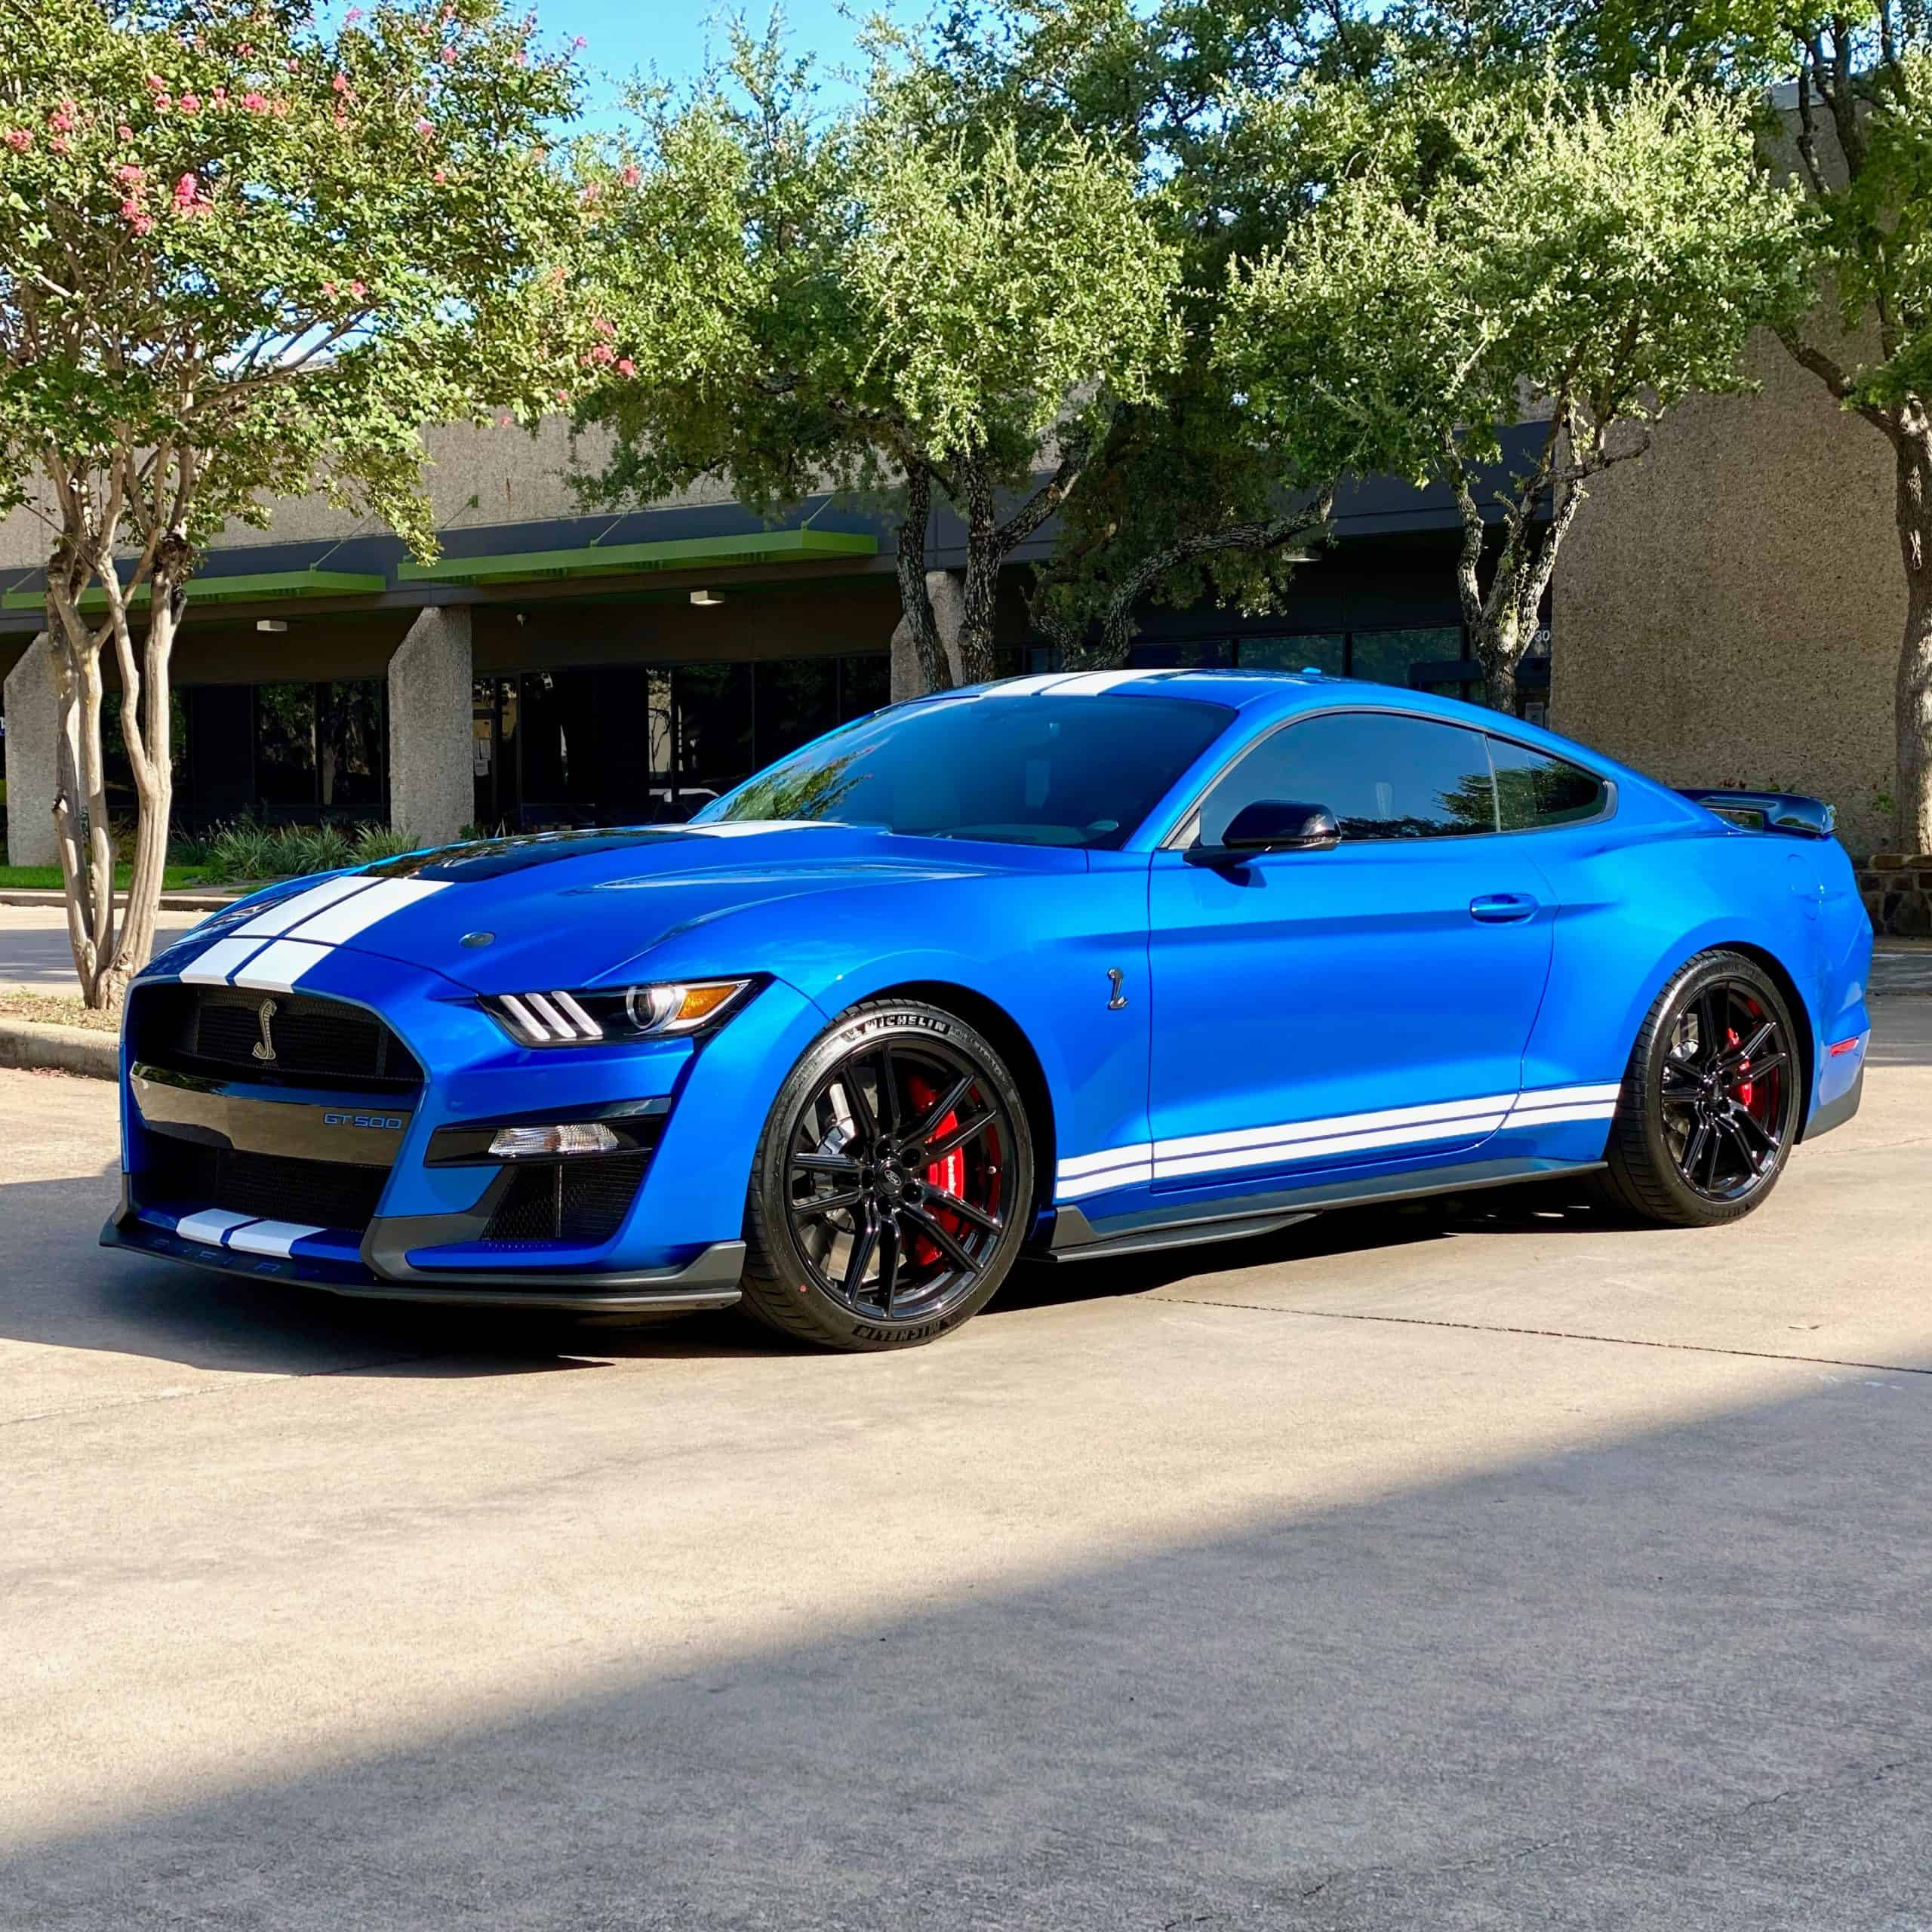 EcoBoost Mustang to Be Focus For Ford - The News Wheel